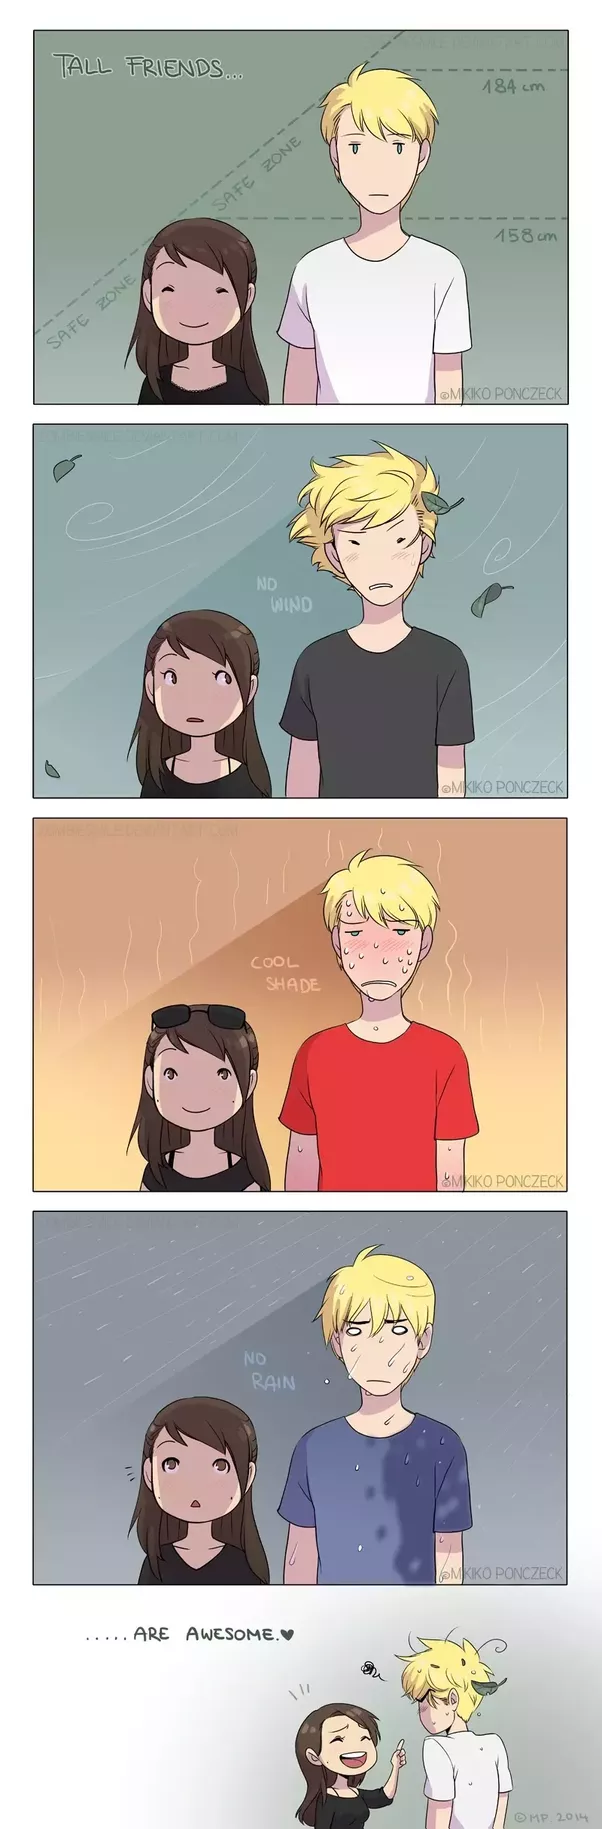 Advantages of dating a tall boy